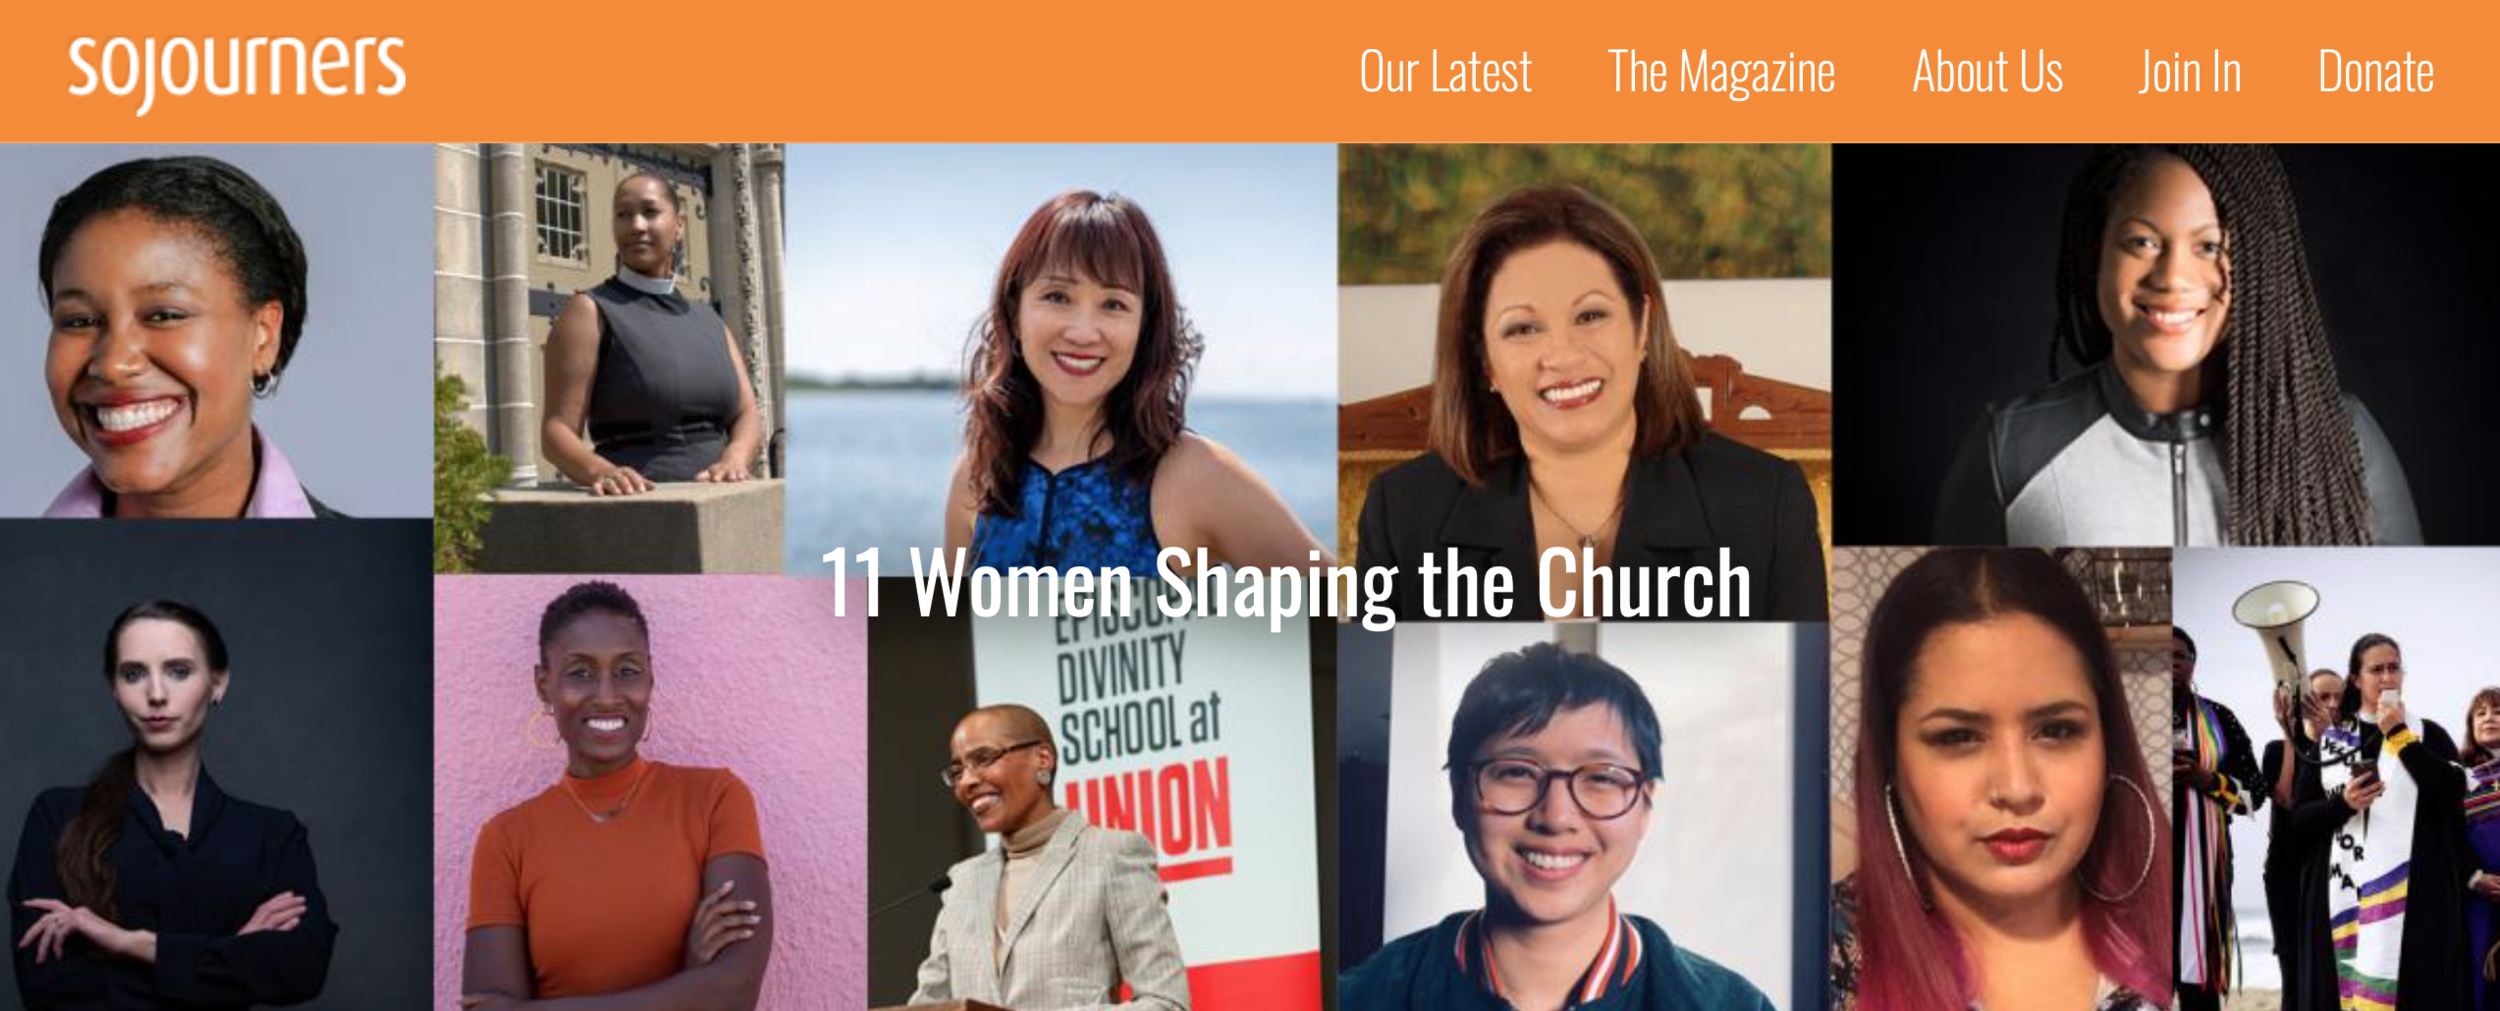 """11 Women Shaping the Church"" - Sojourners, March 2019"